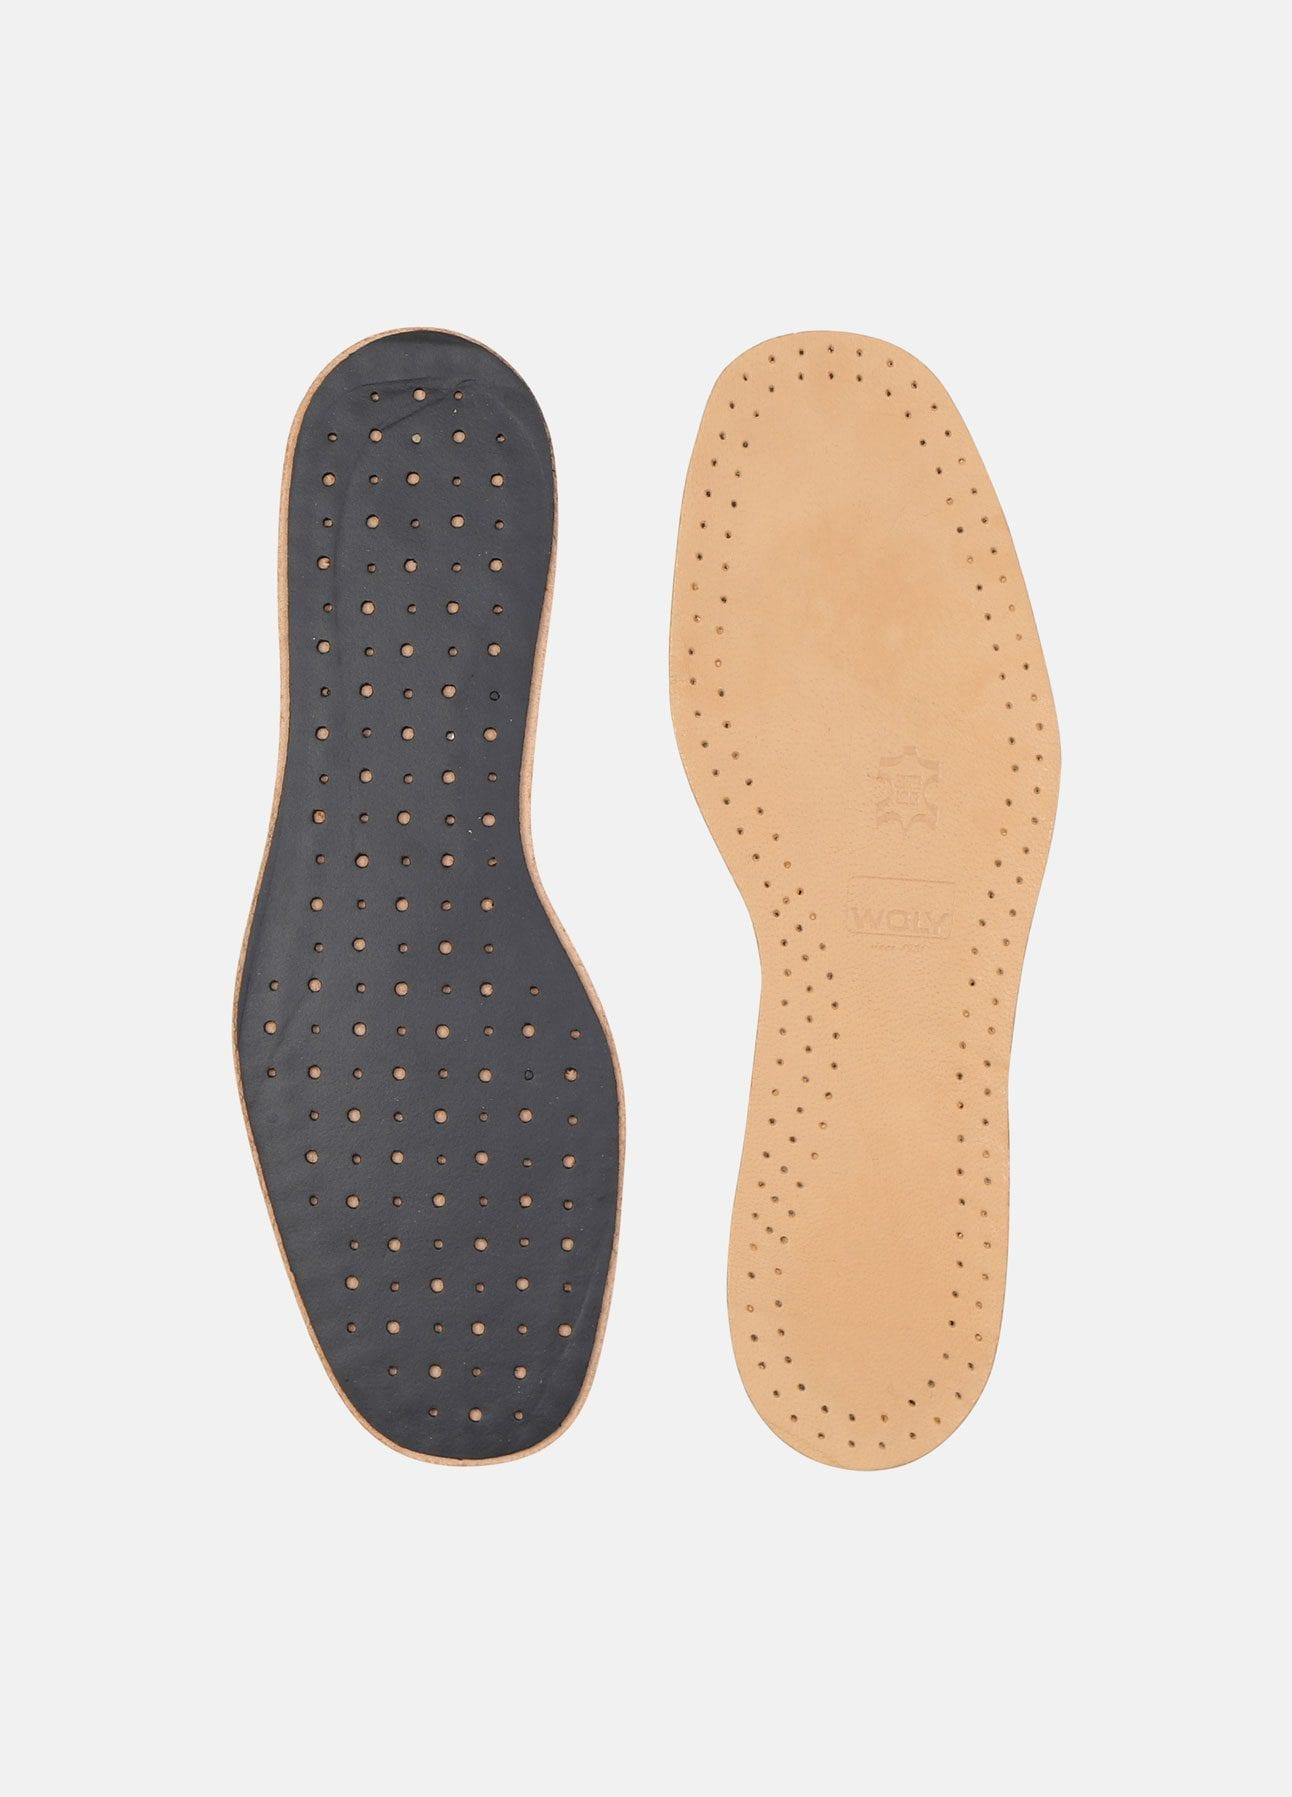 Woly Comfort fra Woly / Goodstep